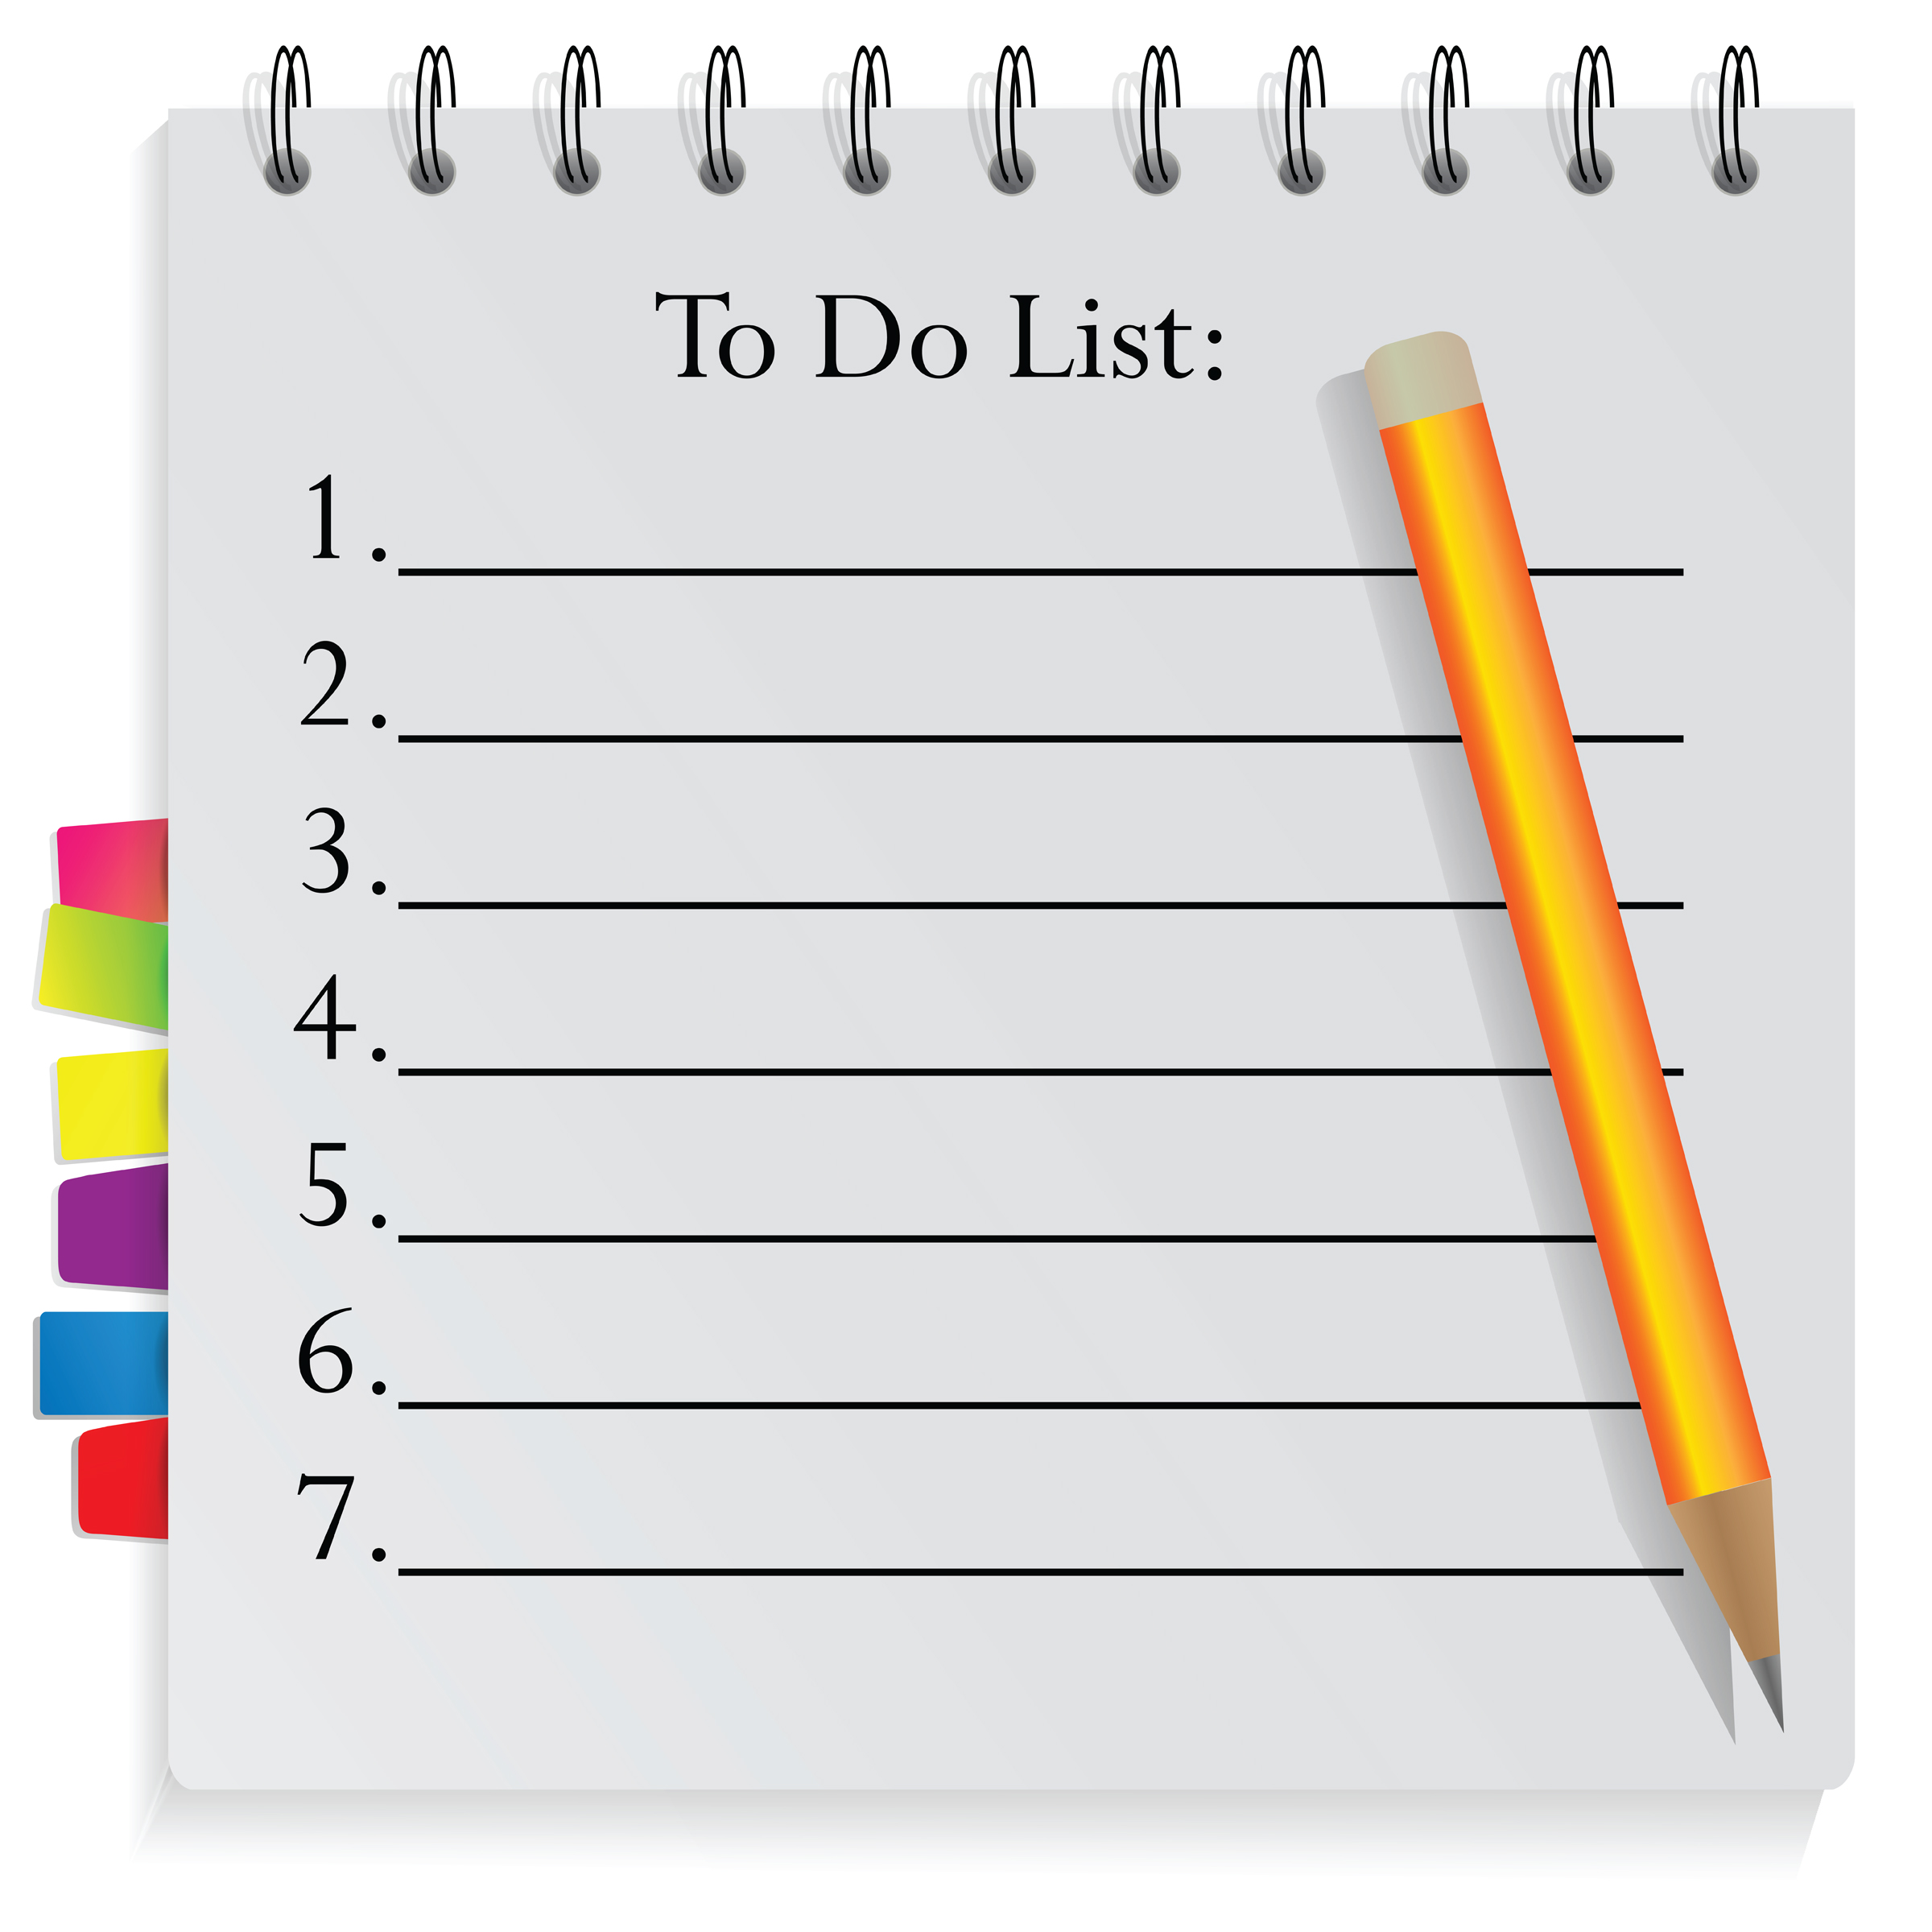 To-Do List - Cutting Out Diabetes